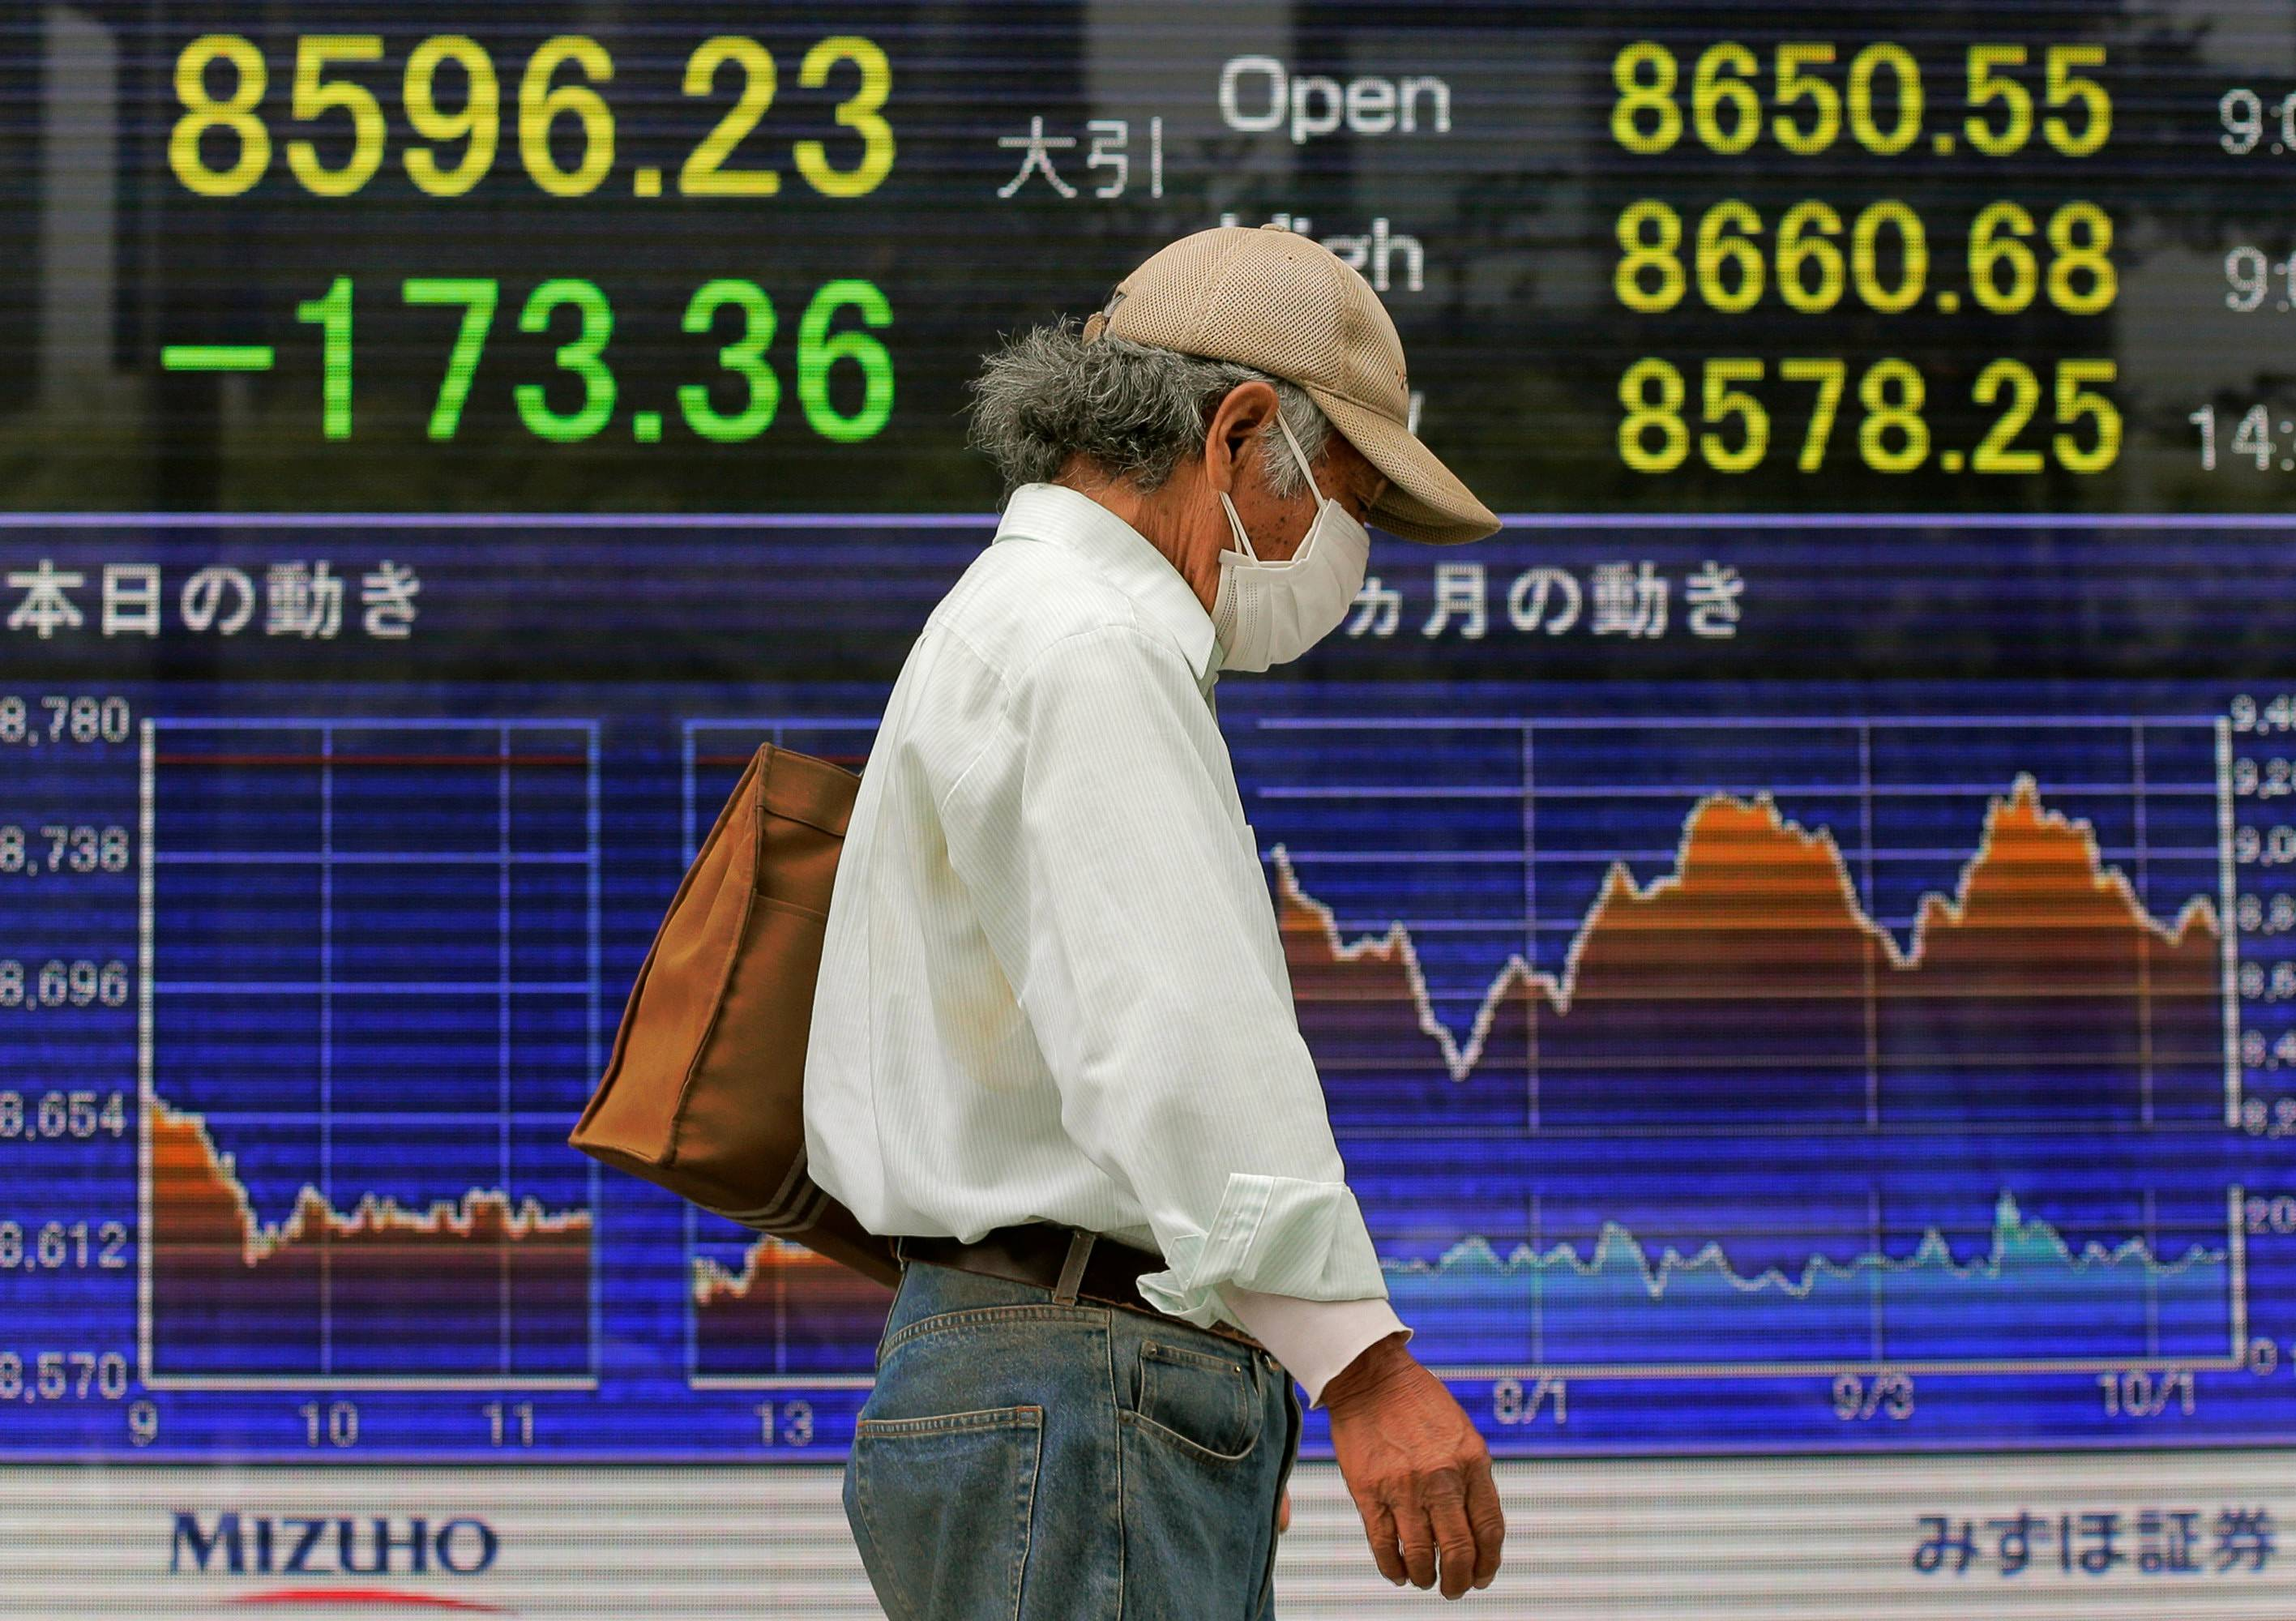 The stock market is lurching downward after a flat 2015 and large banks are casting increasingly gloomy predictions about returns in the years to come. Some older workers say they are planning to push back retirement dates, bracing for a protracted bear market that shrinks their nest egg.